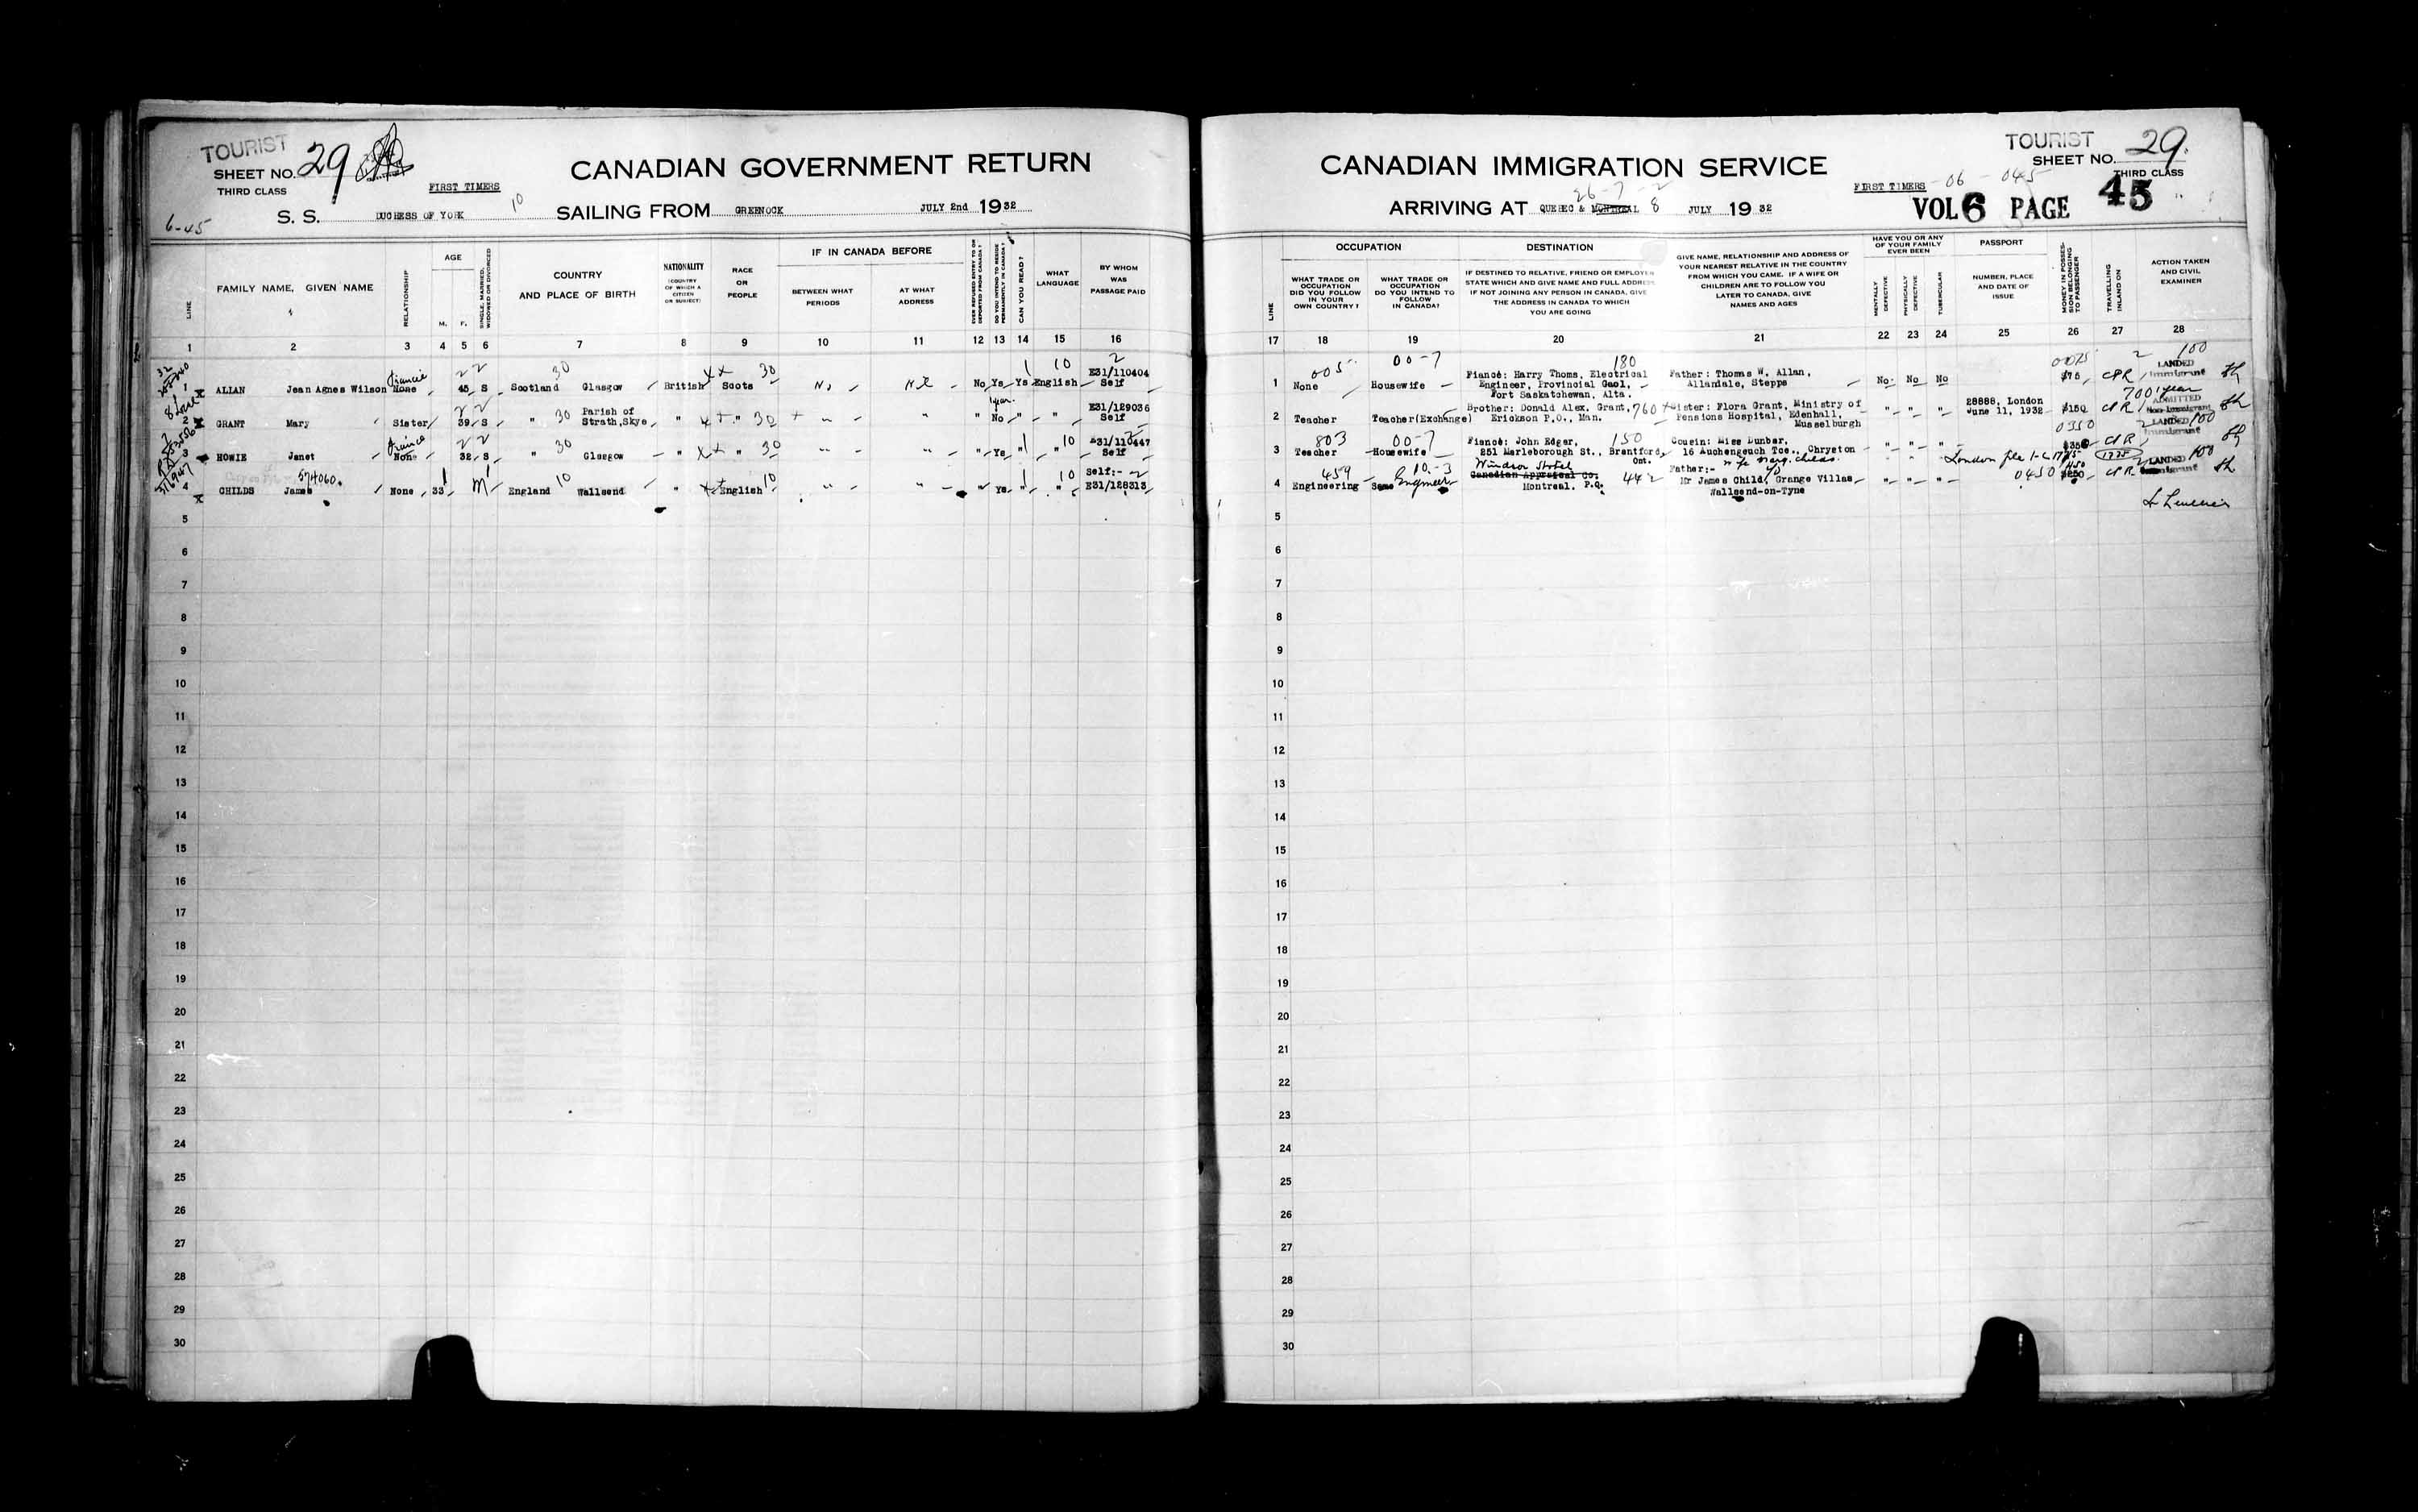 Title: Passenger Lists: Quebec City (1925-1935) - Mikan Number: 134839 - Microform: t-14778